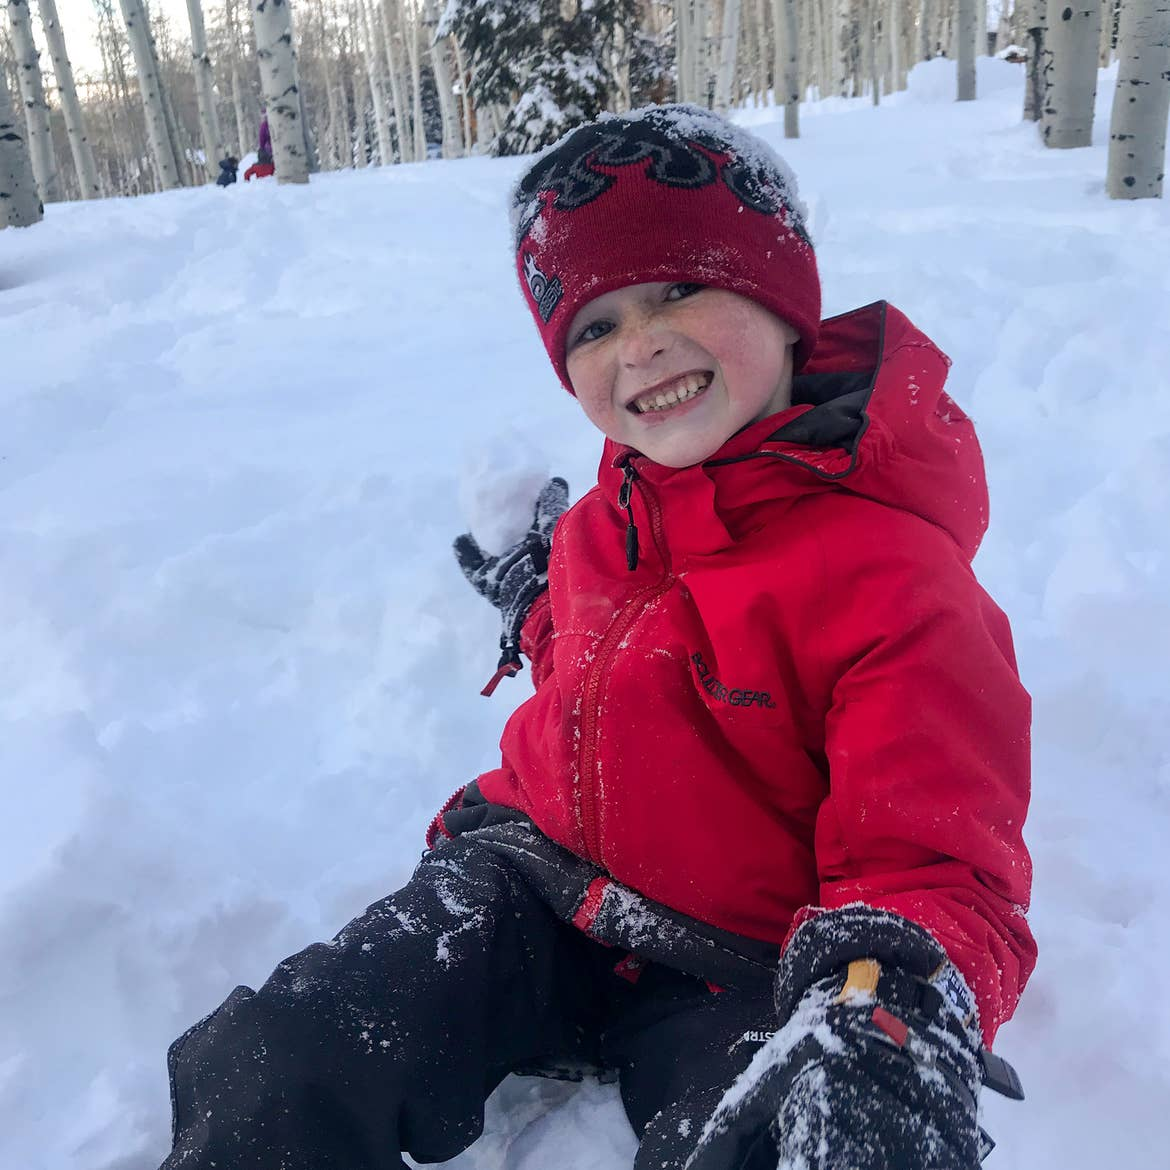 Contributor, Jessica Averett's son clad in winter gear playing in the snow.